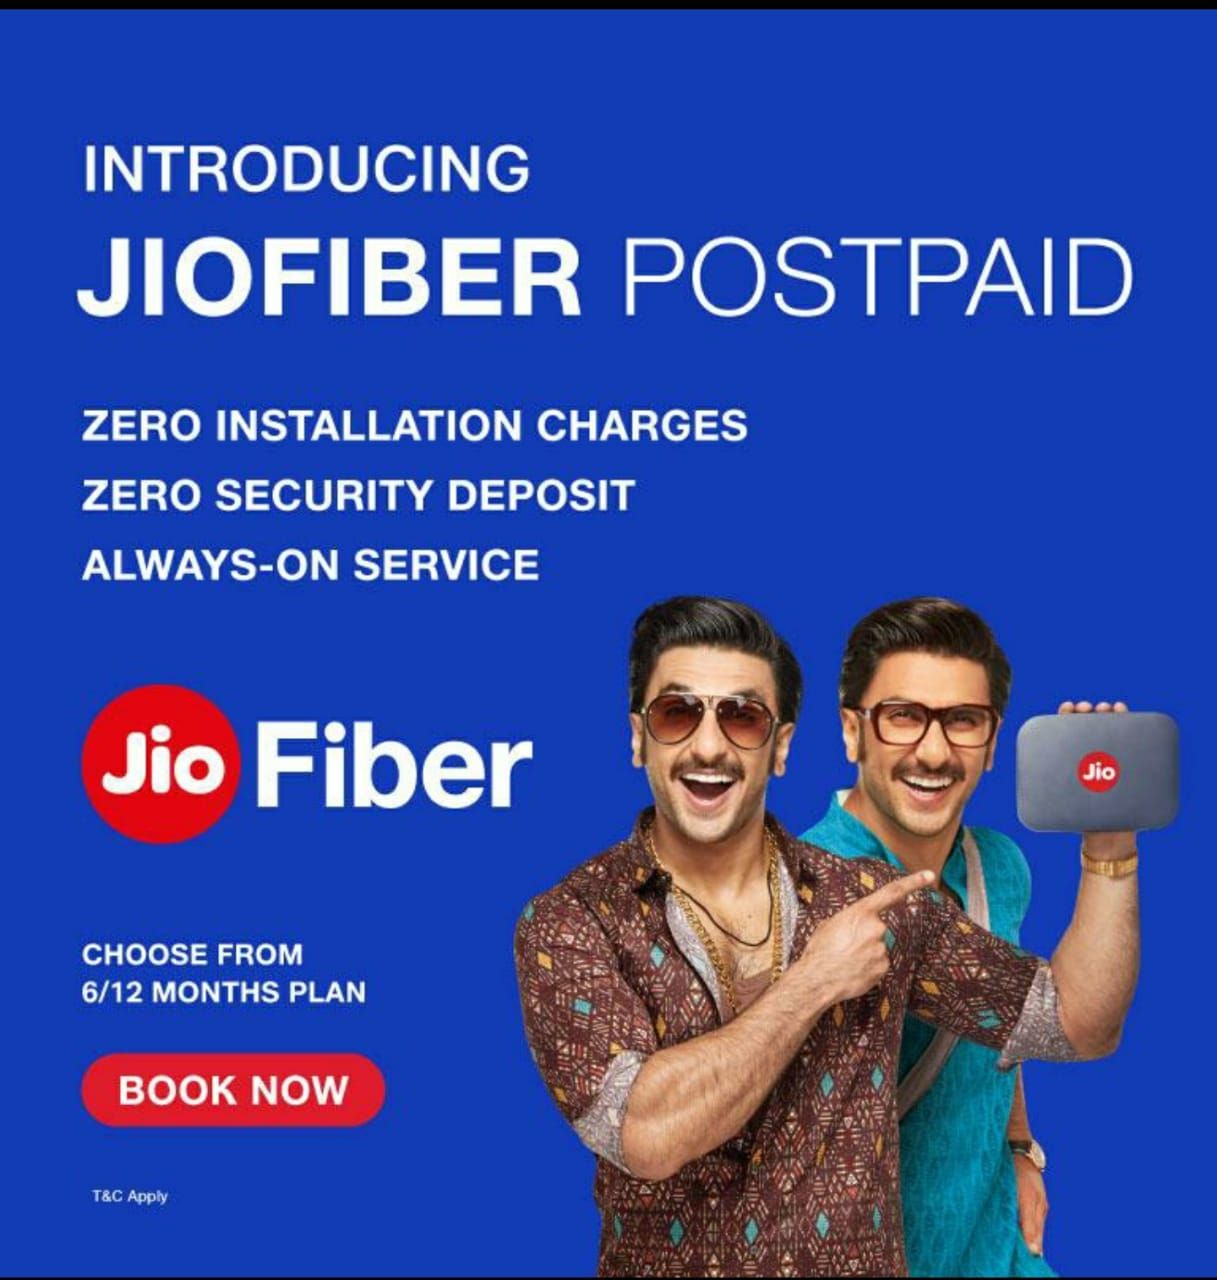 Jio launches Jio Fiber postpaid service for its users